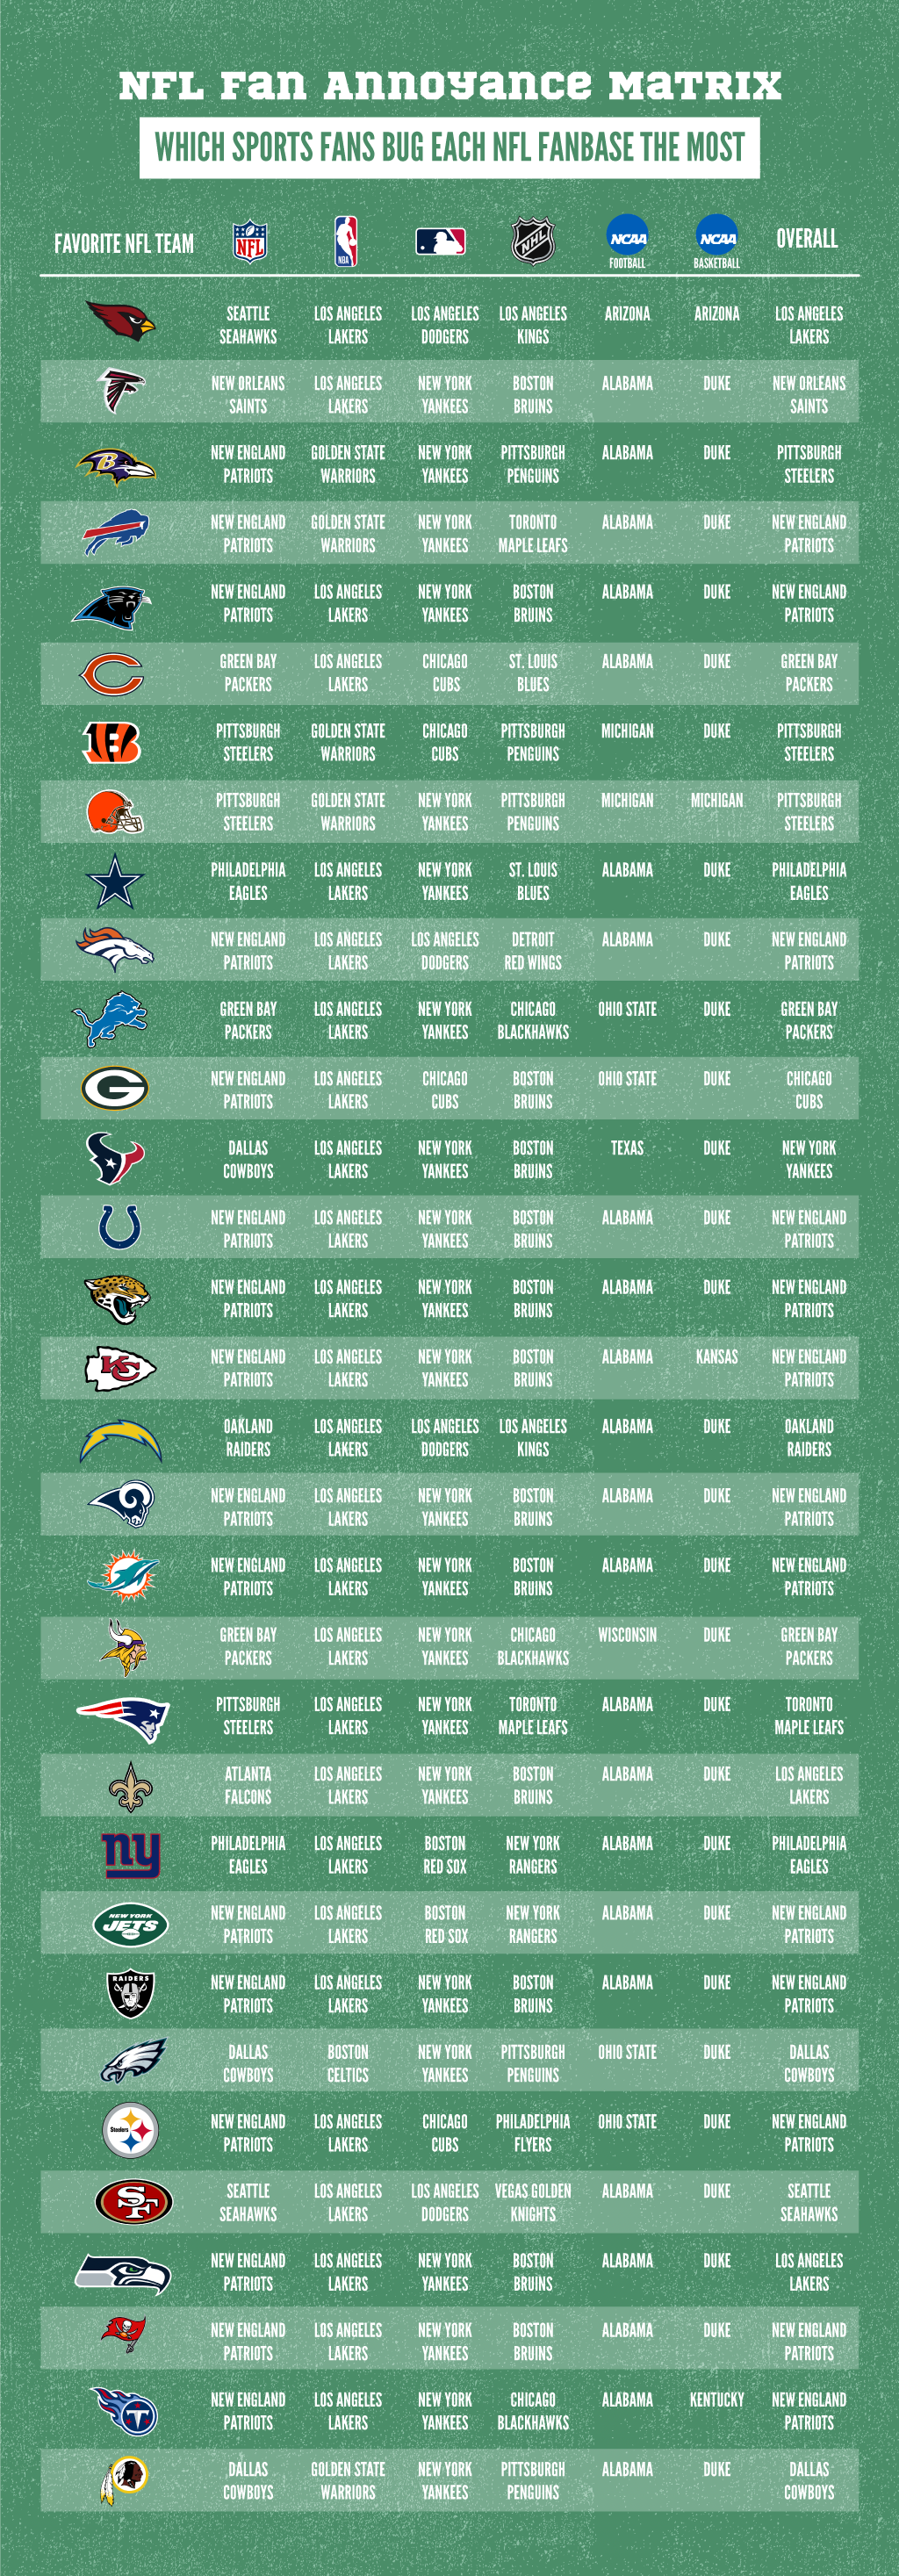 Sports Teams NFL Fans Find Most Annoying